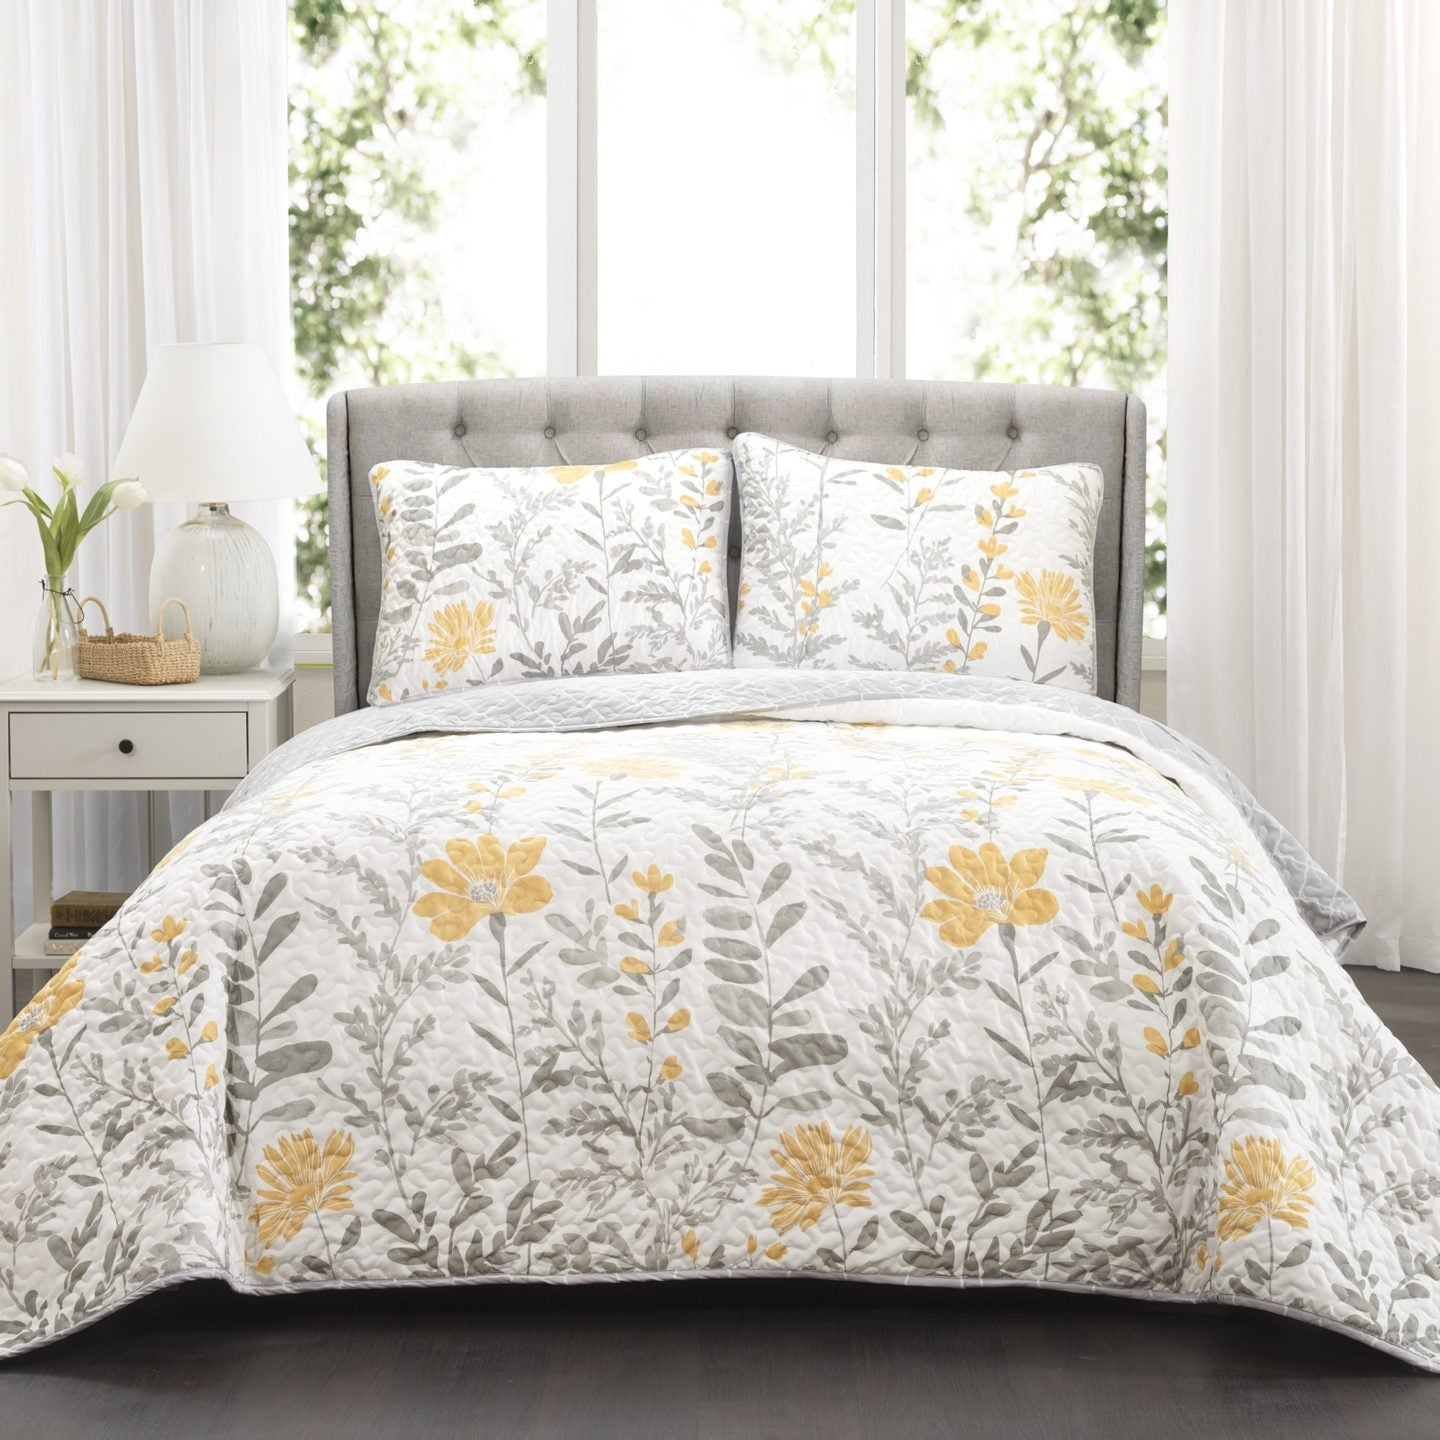 747d049406b Discover the Best Bedspreads for Summer - Overstock.com